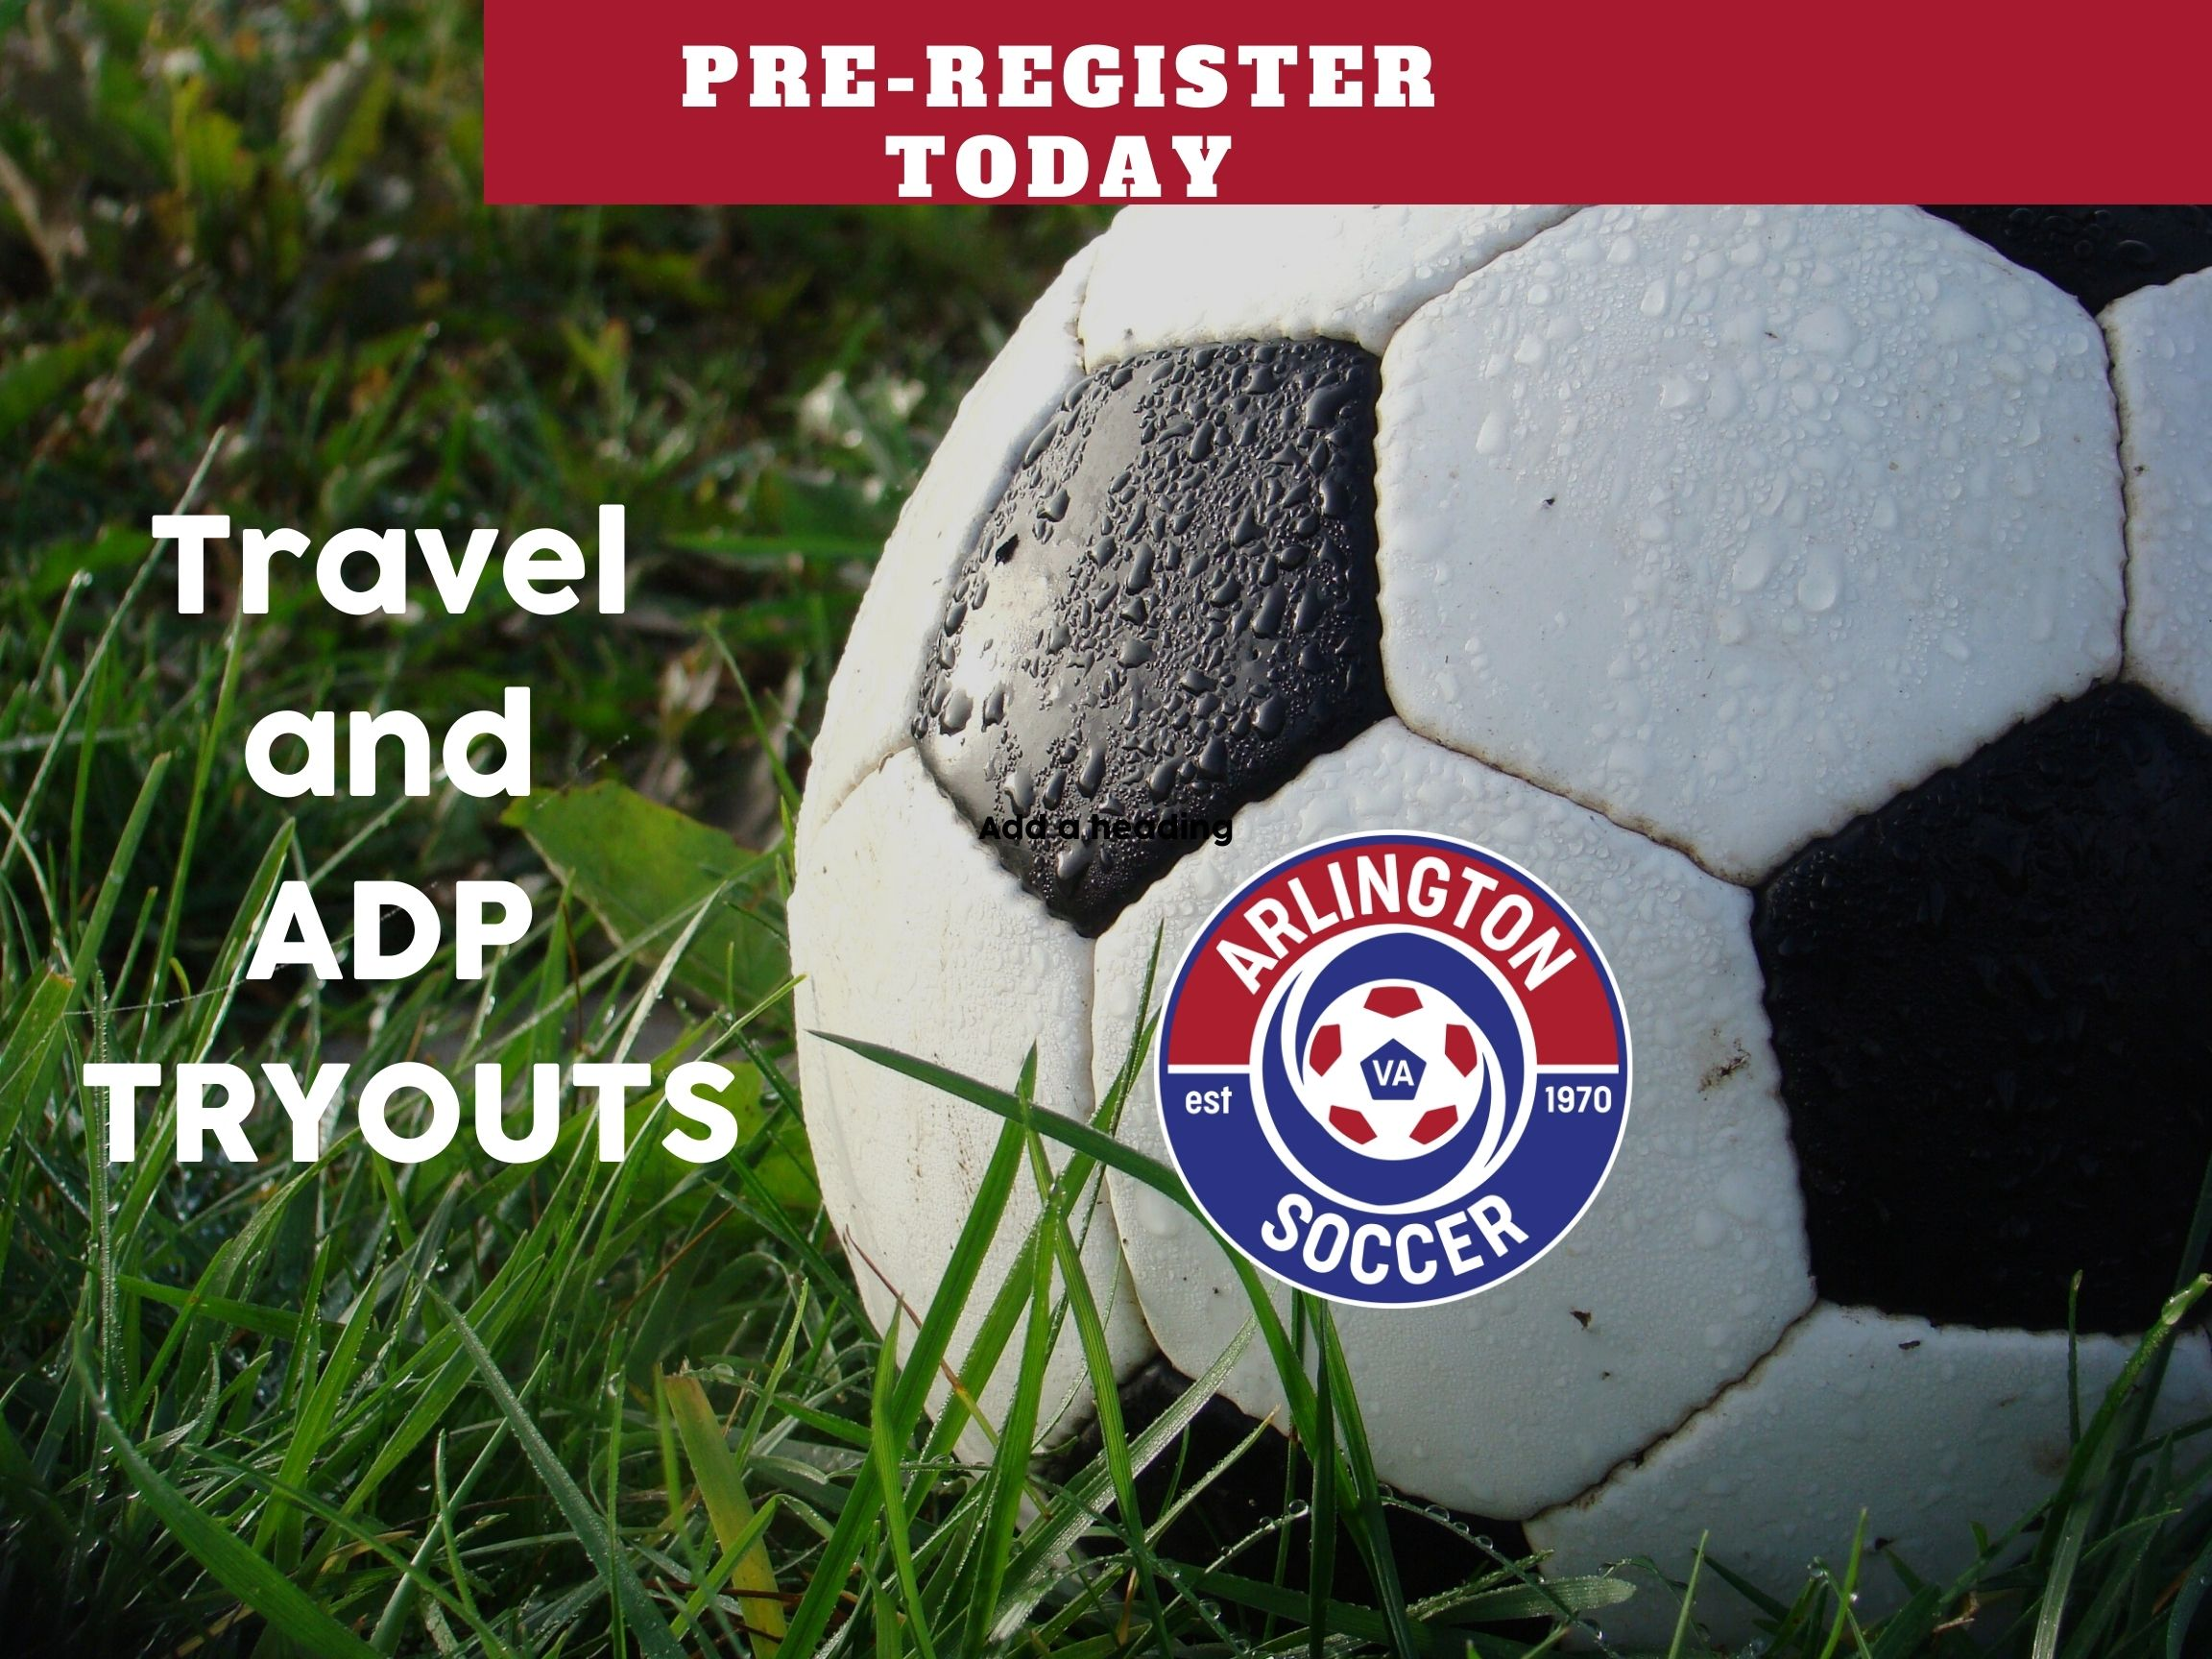 Travel and ADP Tryouts